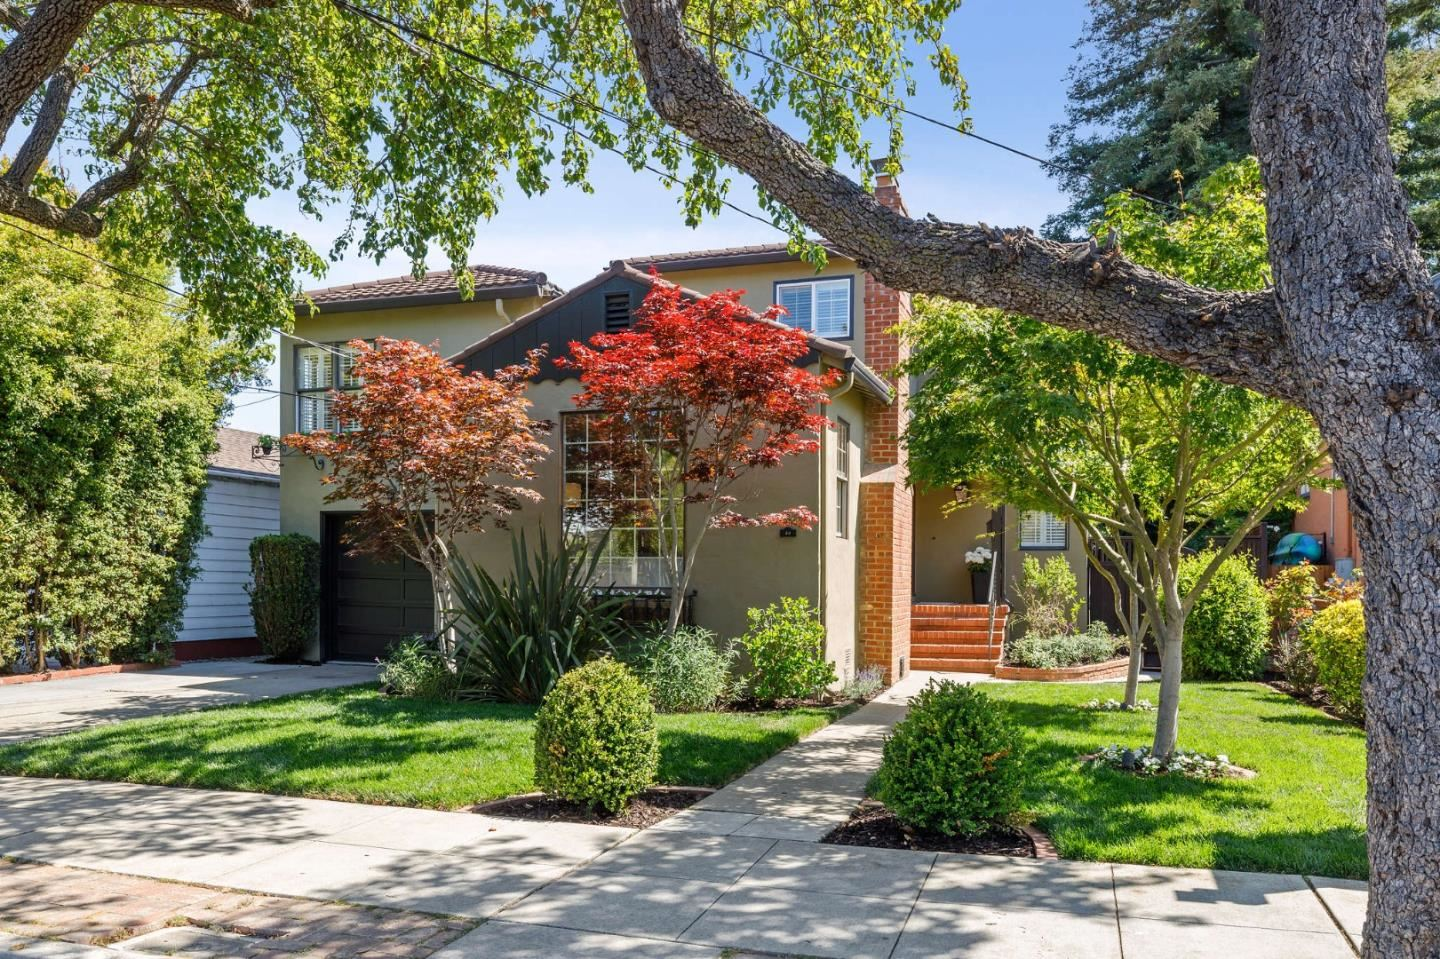 Photo for 34 Channing Road, BURLINGAME, CA 94010 (MLS # ML81853997)